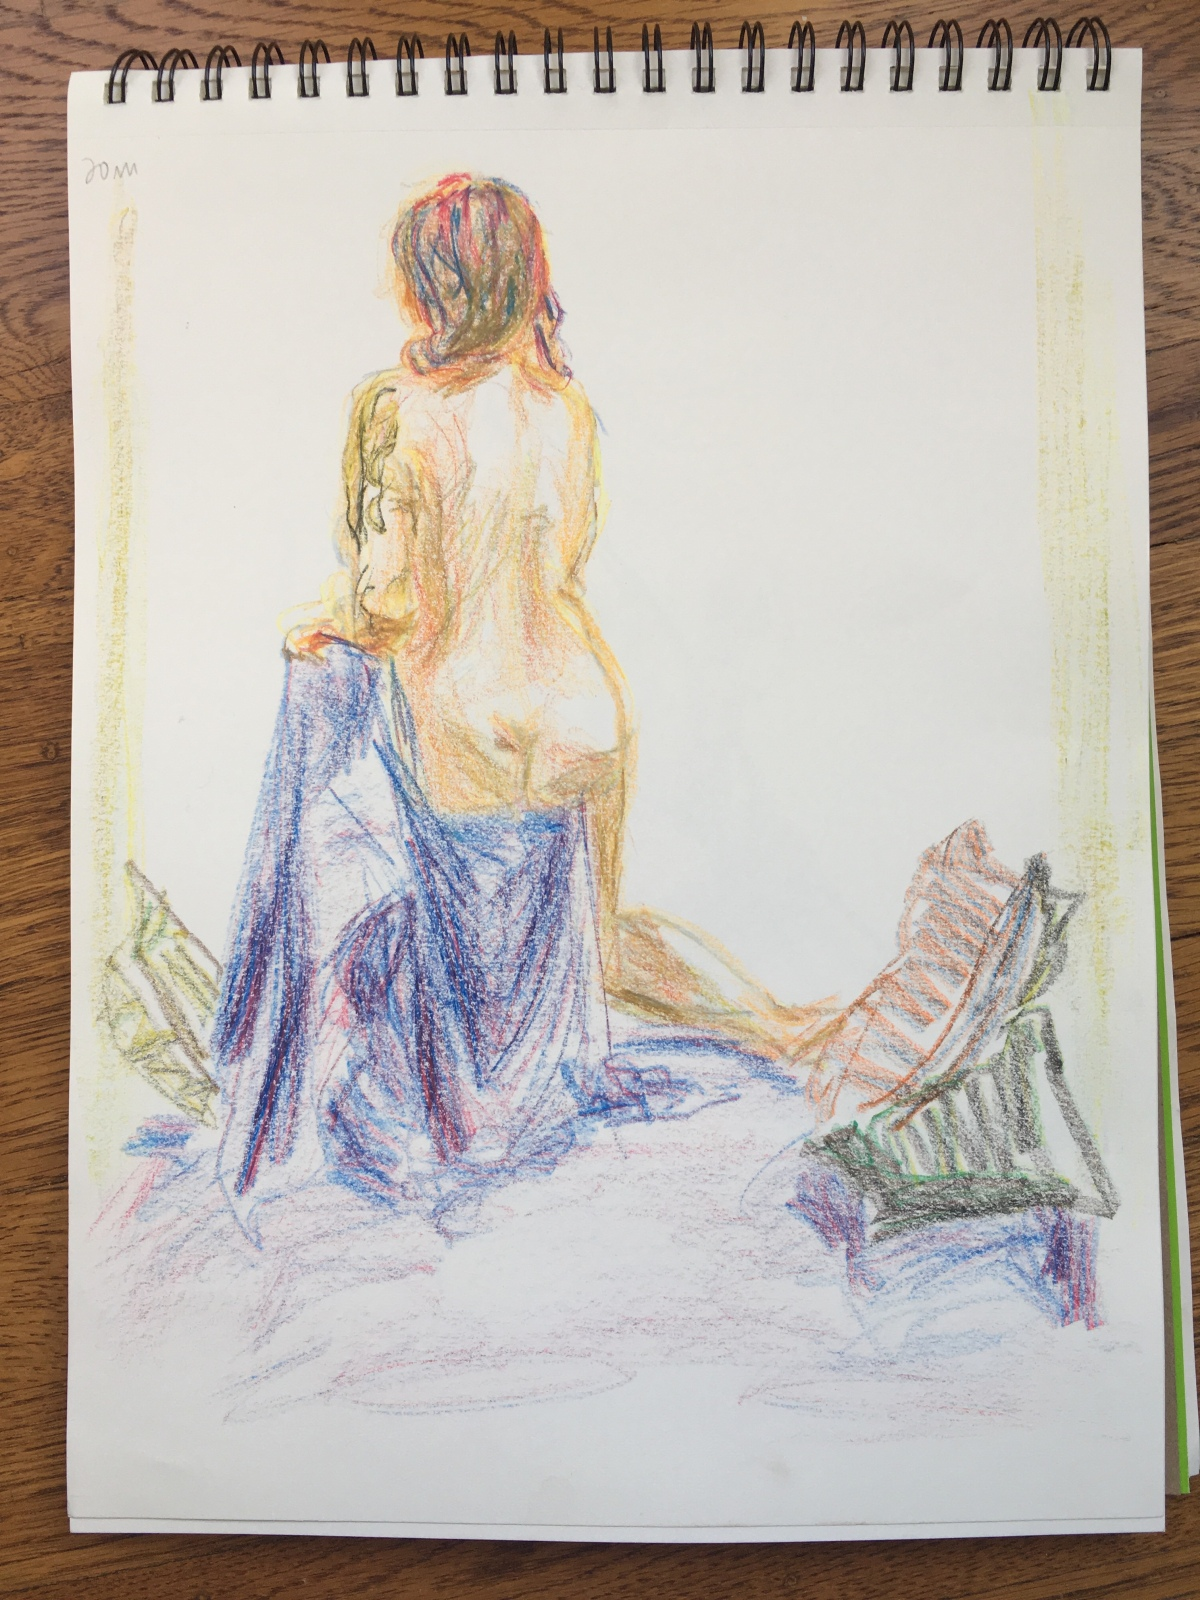 5-minute crayon sketch of a nude woman seen from behind, sitting on a draped chair, by Lisa Hsia, January 2018